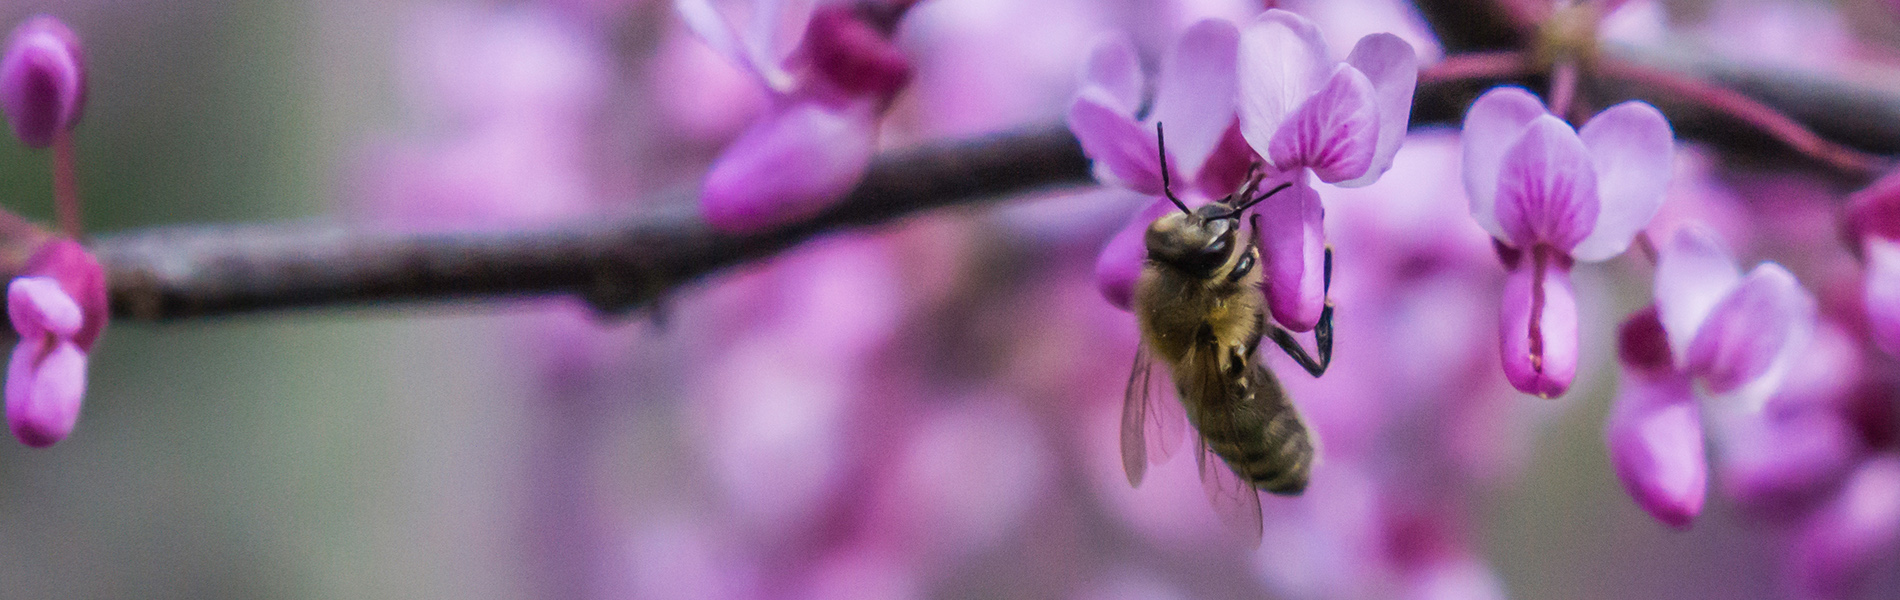 European Union Neonic Ban to Protect Bees